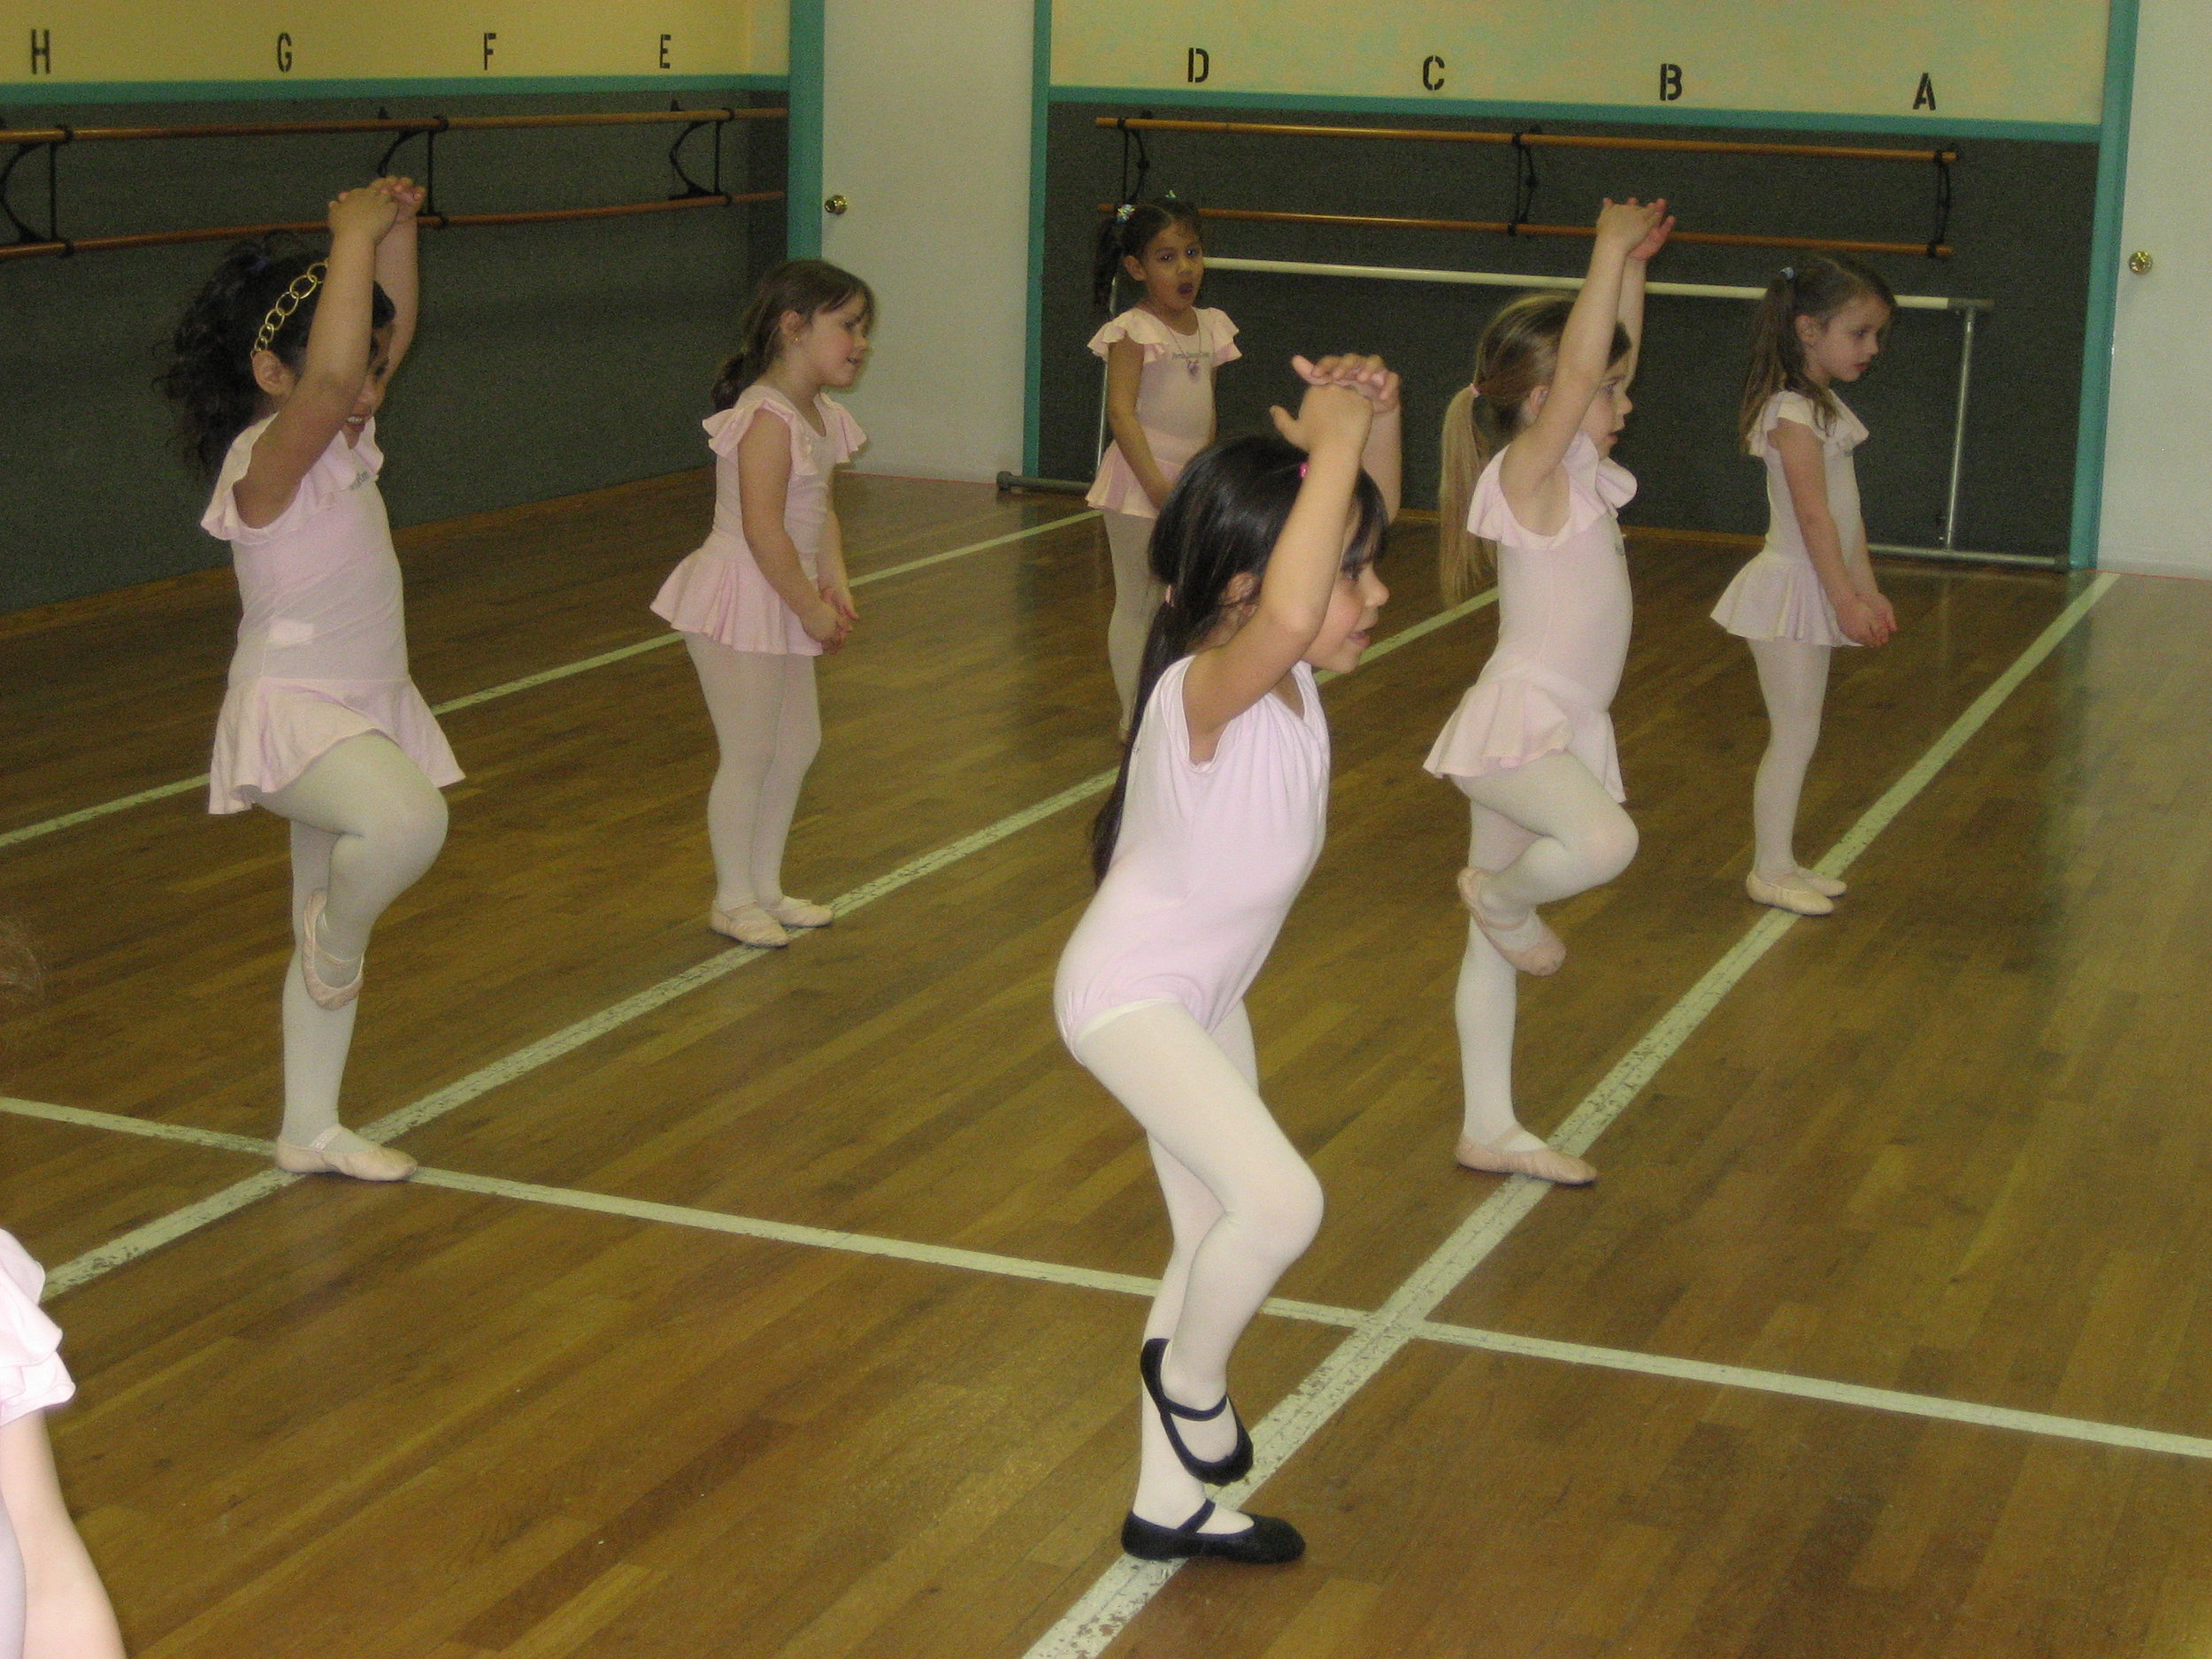 Combo IIA & IIB - 6 - 7 year oldsA 1.5-hour class of ballet and tap (IIA) or ballet and jazz (IIB) devoted to building strong technique in a fun environment. More challenging terminology and proper technique encourages concentration skills. Home practice ensures continuous progress that is rewarded with self-confidence and personal accomplishment. Both routines are performed in the annual production.